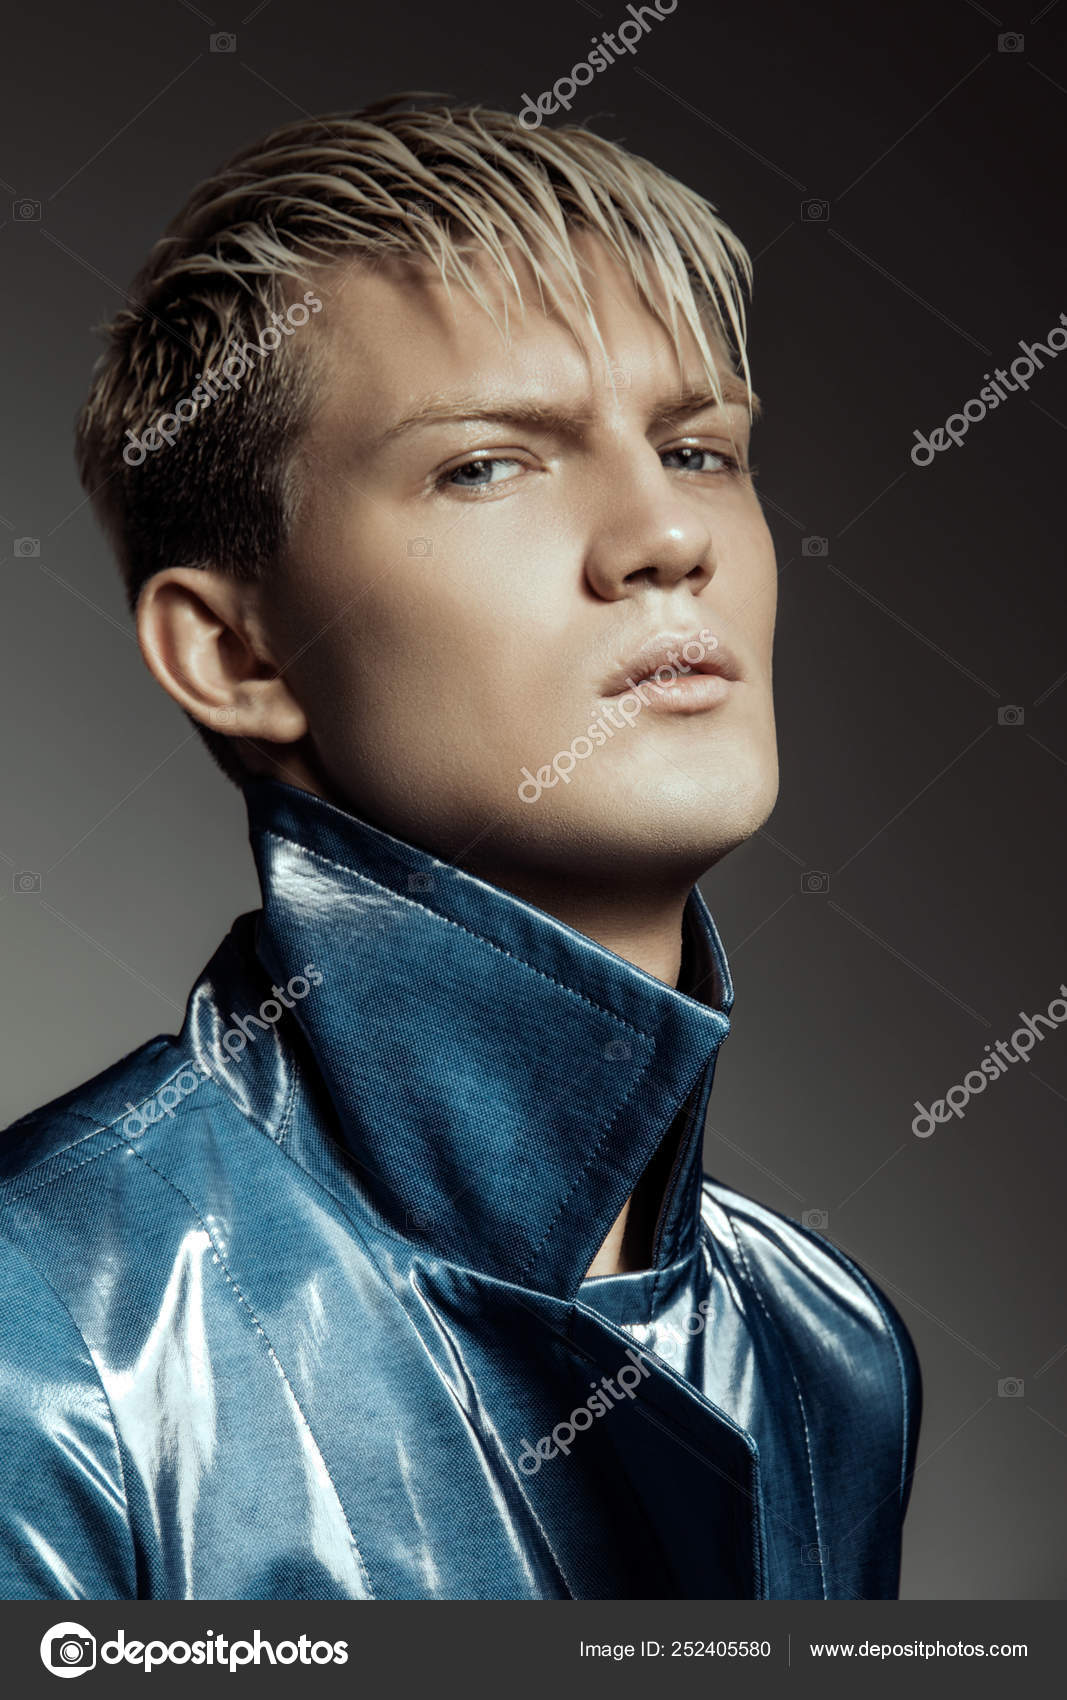 Handsome Stripped Blonde Male Model Wearing Blue Coat Grey Isolated Stock Photo C Phoenixstockphoto Gmail Com 252405580